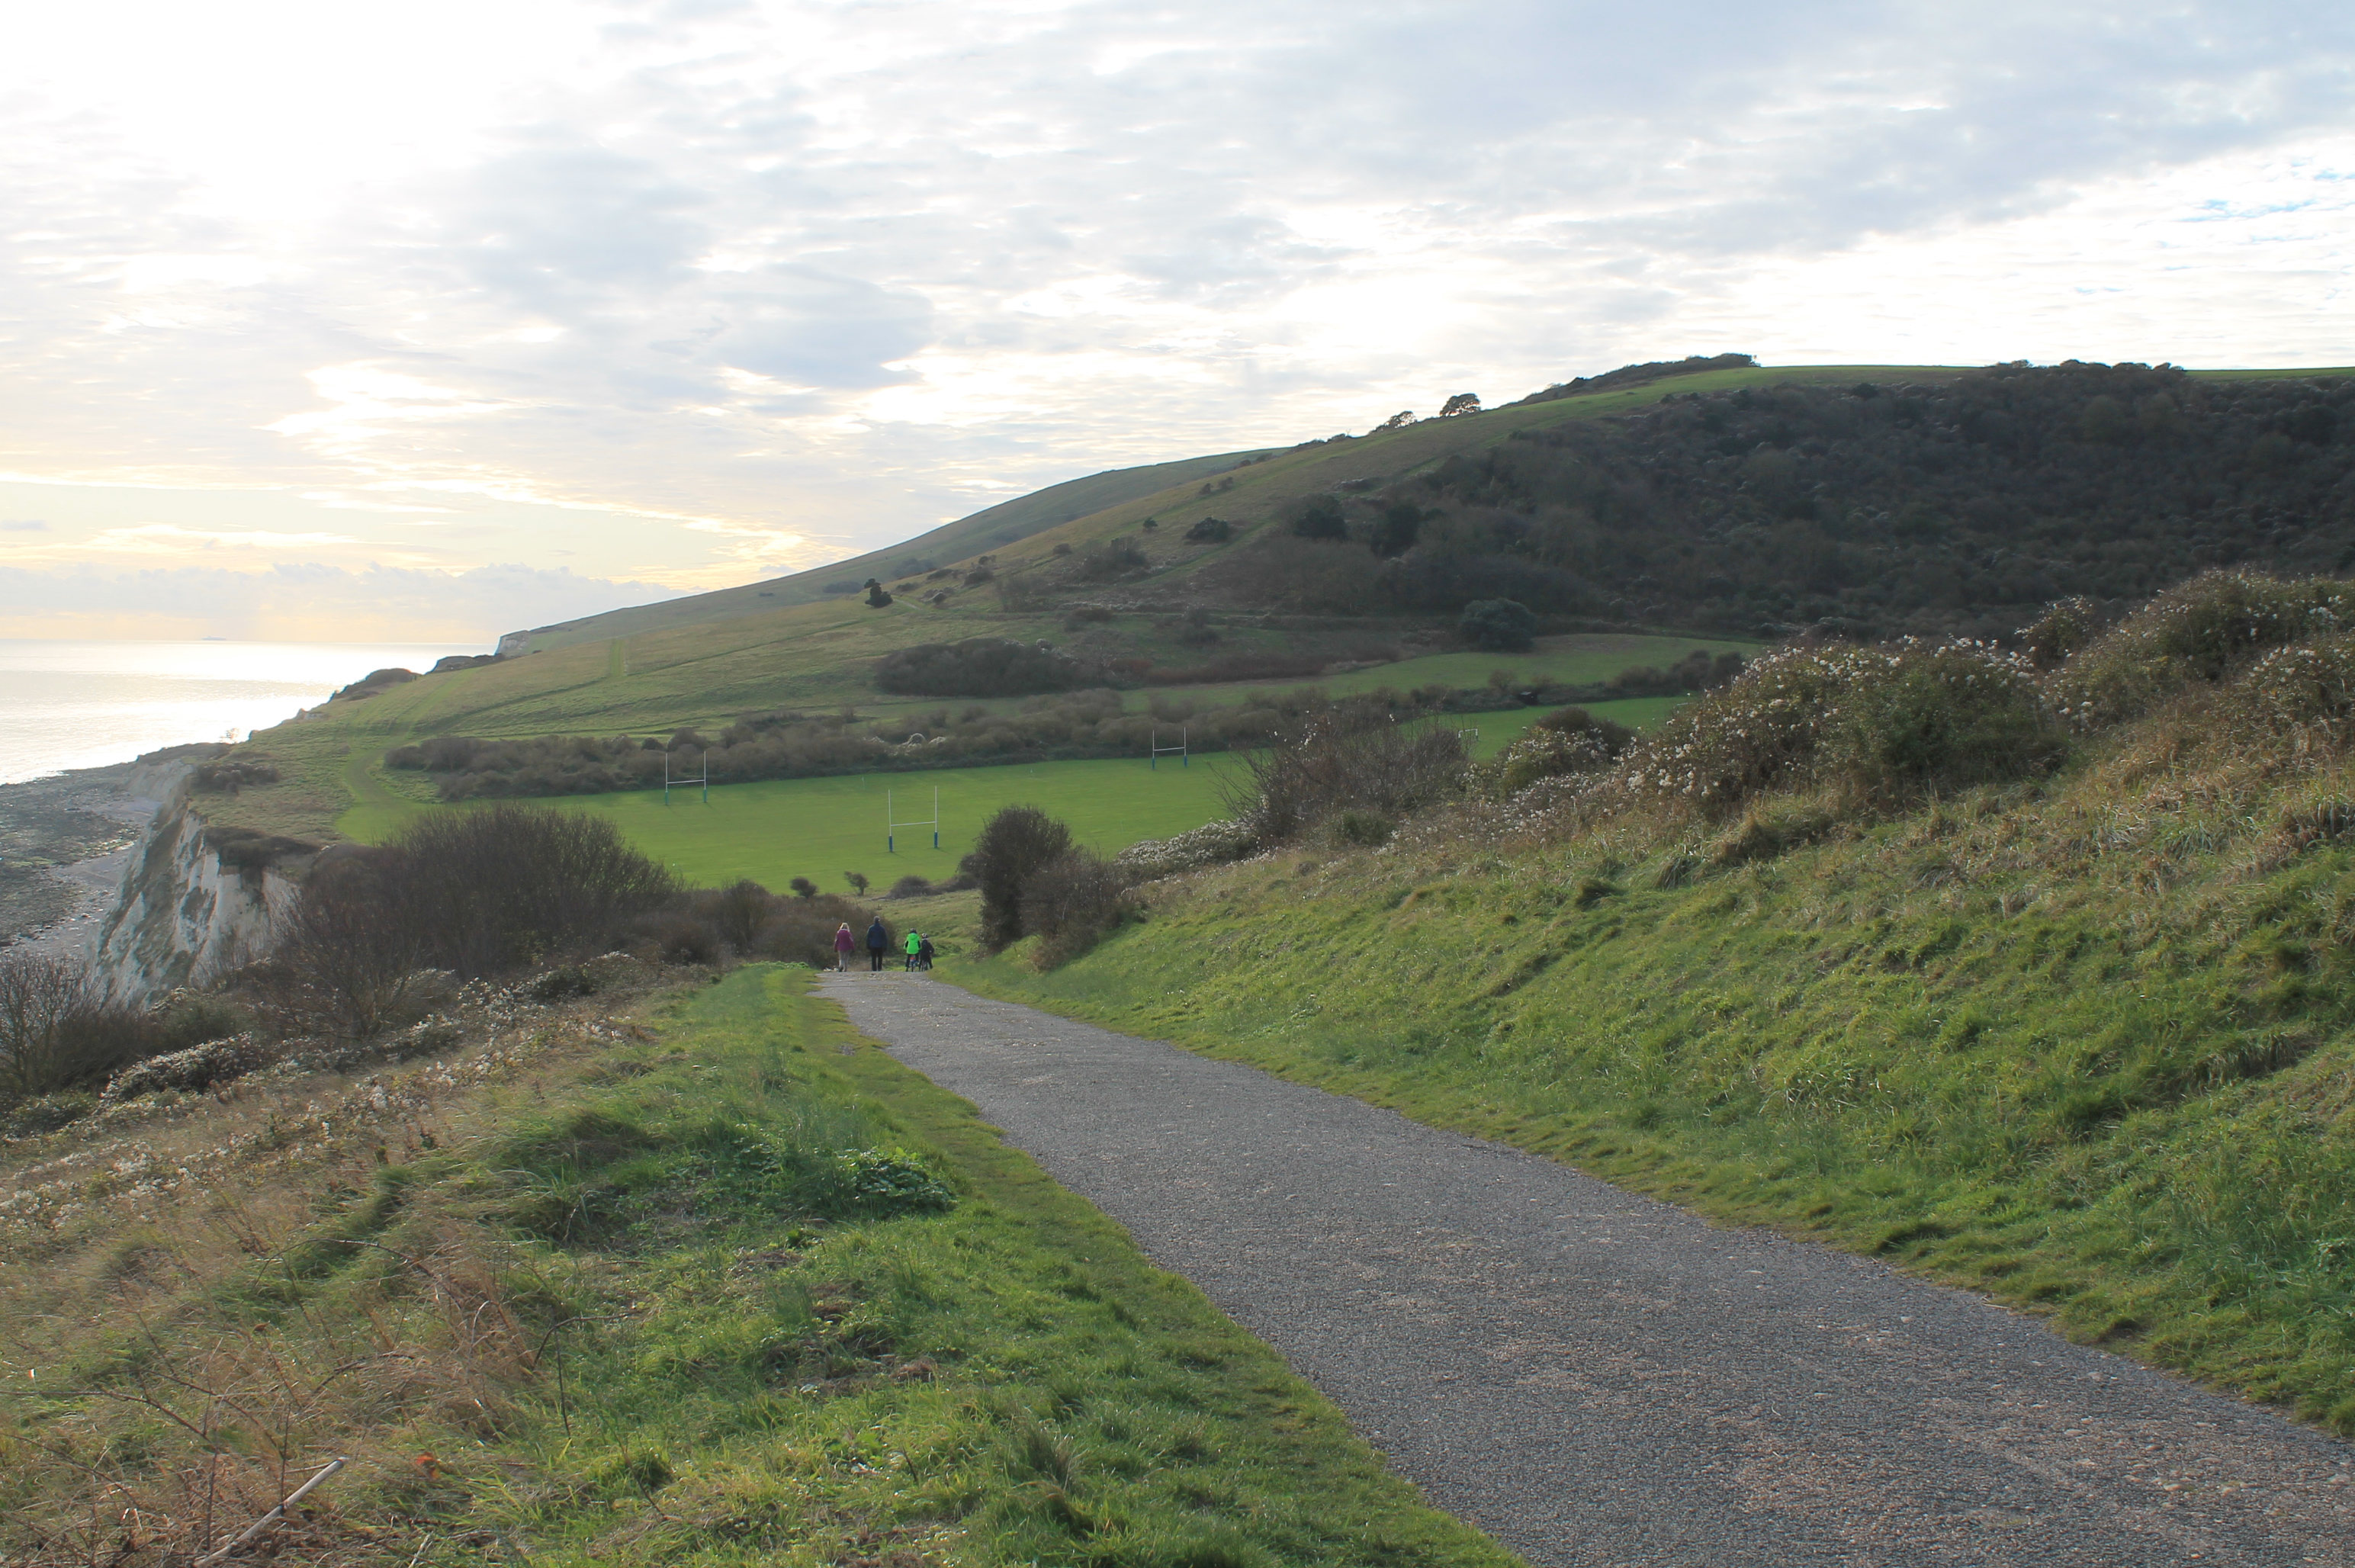 Whitbread Hollow from the east with cliff edge